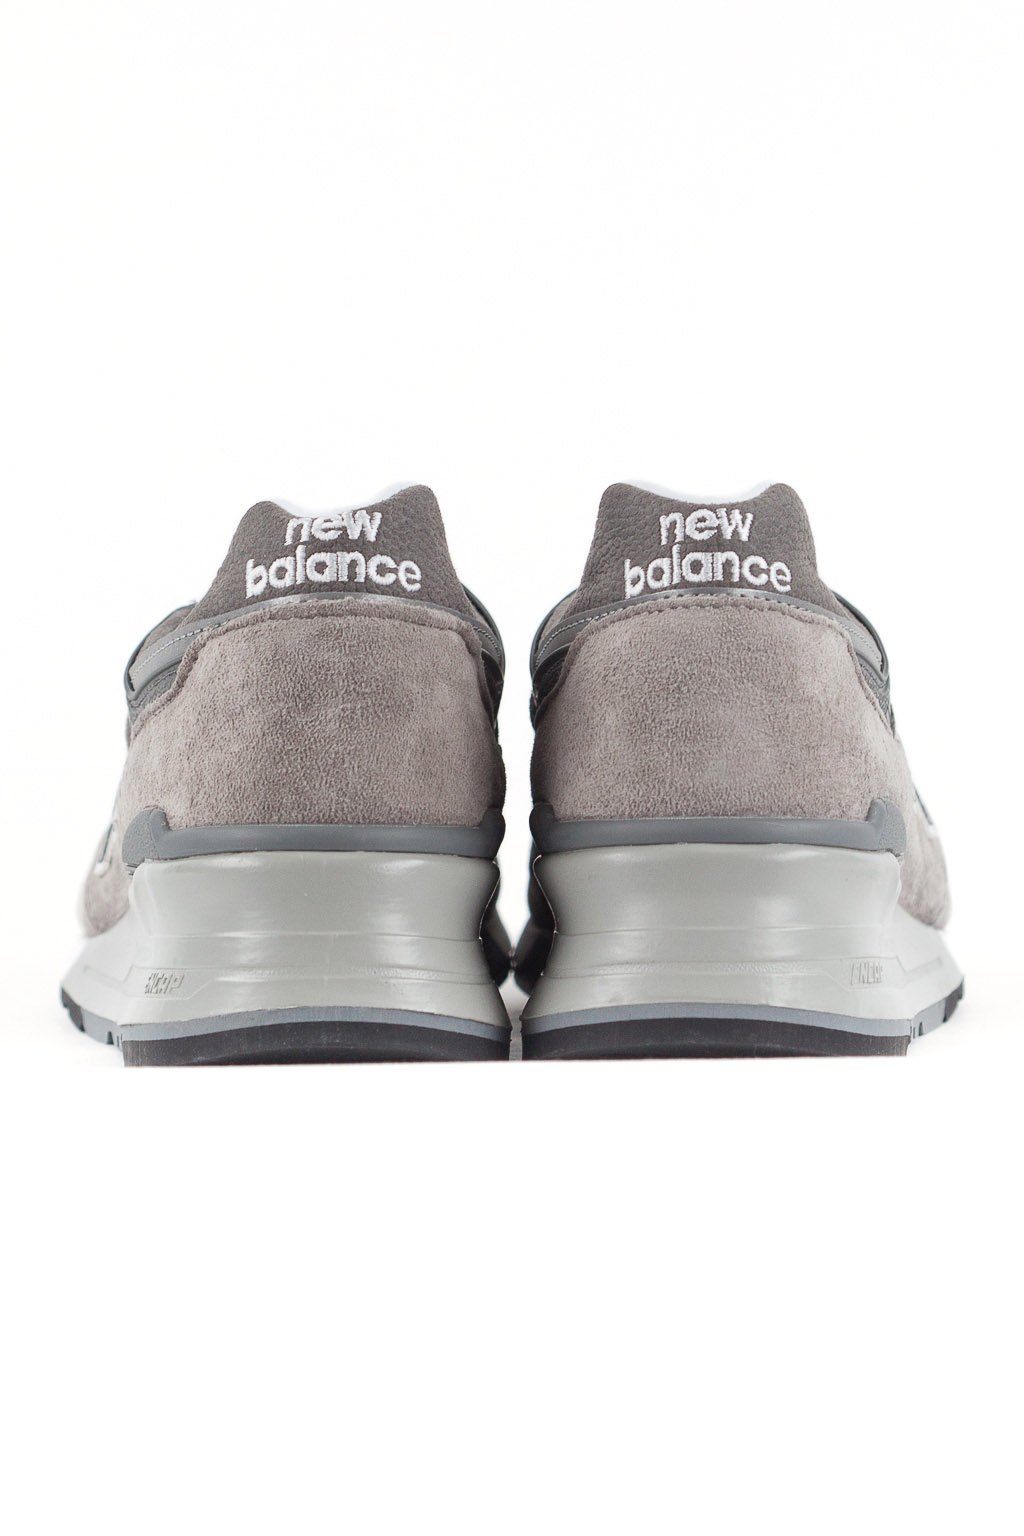 New Balance Reissue: M997GY Made in USA